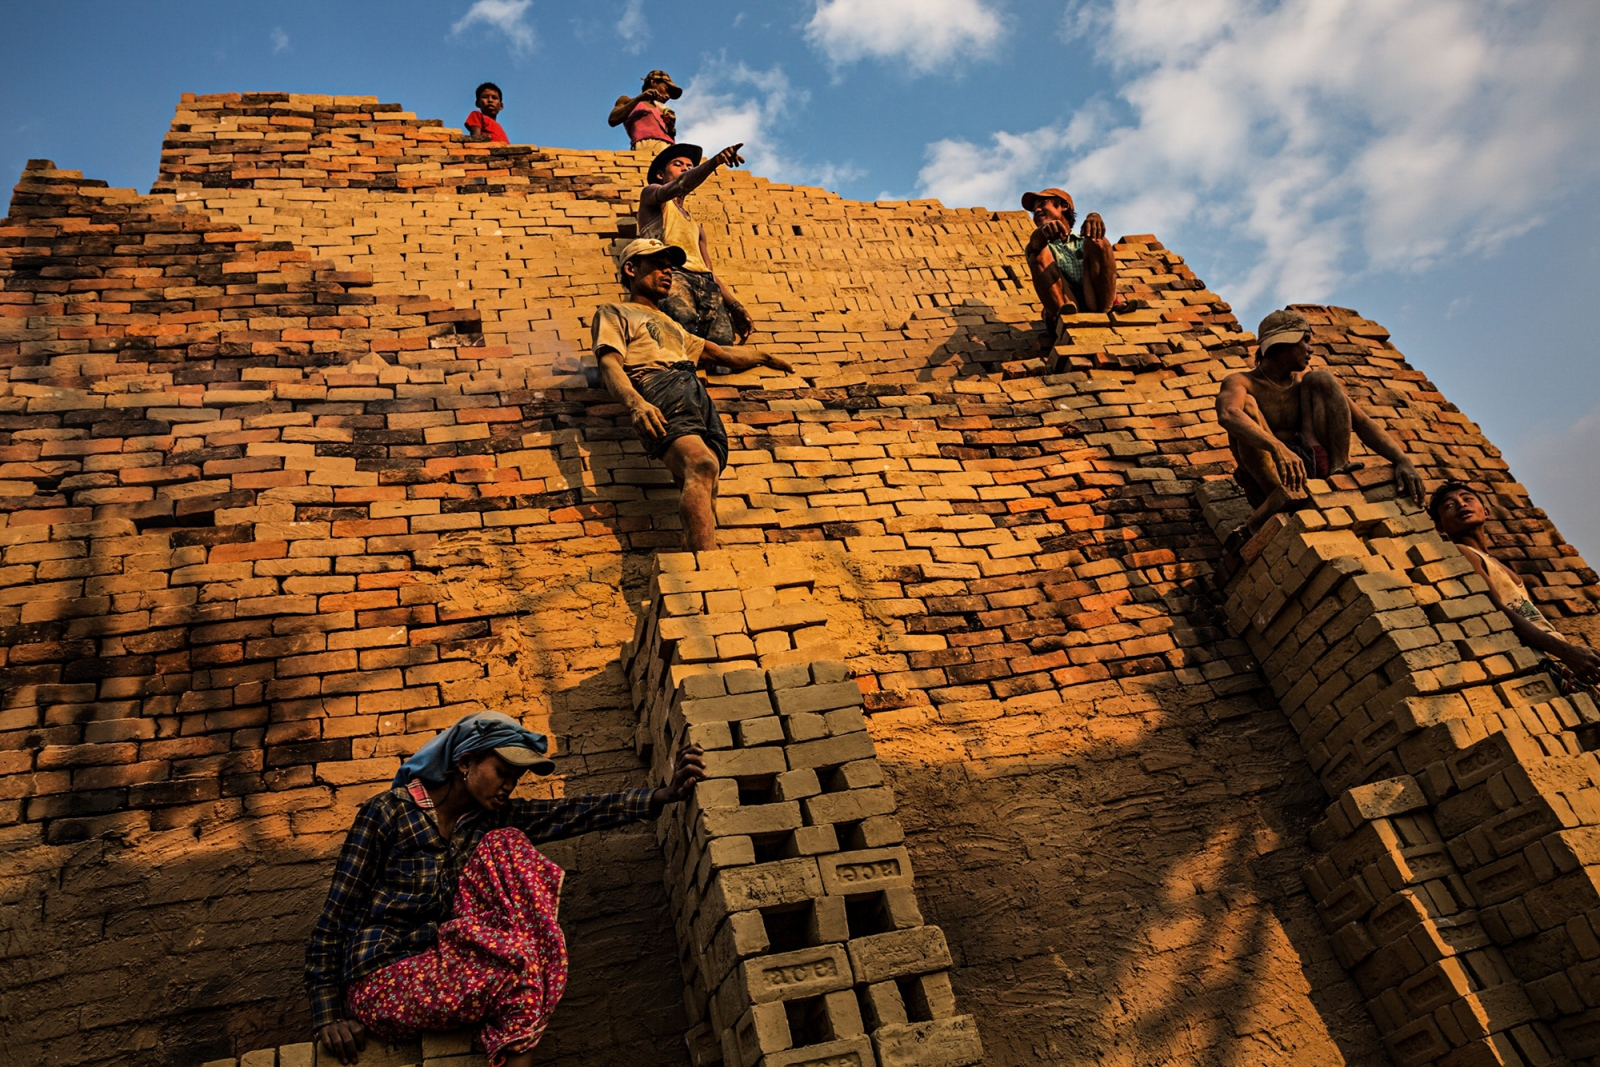 On the outskirts of Yangon, brick makers perch precariously on the side of a brick kiln in order to pass raw bricks to the top. Fires will be lit underneath the kiln and the heat and smoke will cook and dry the bricks for approximately one week.